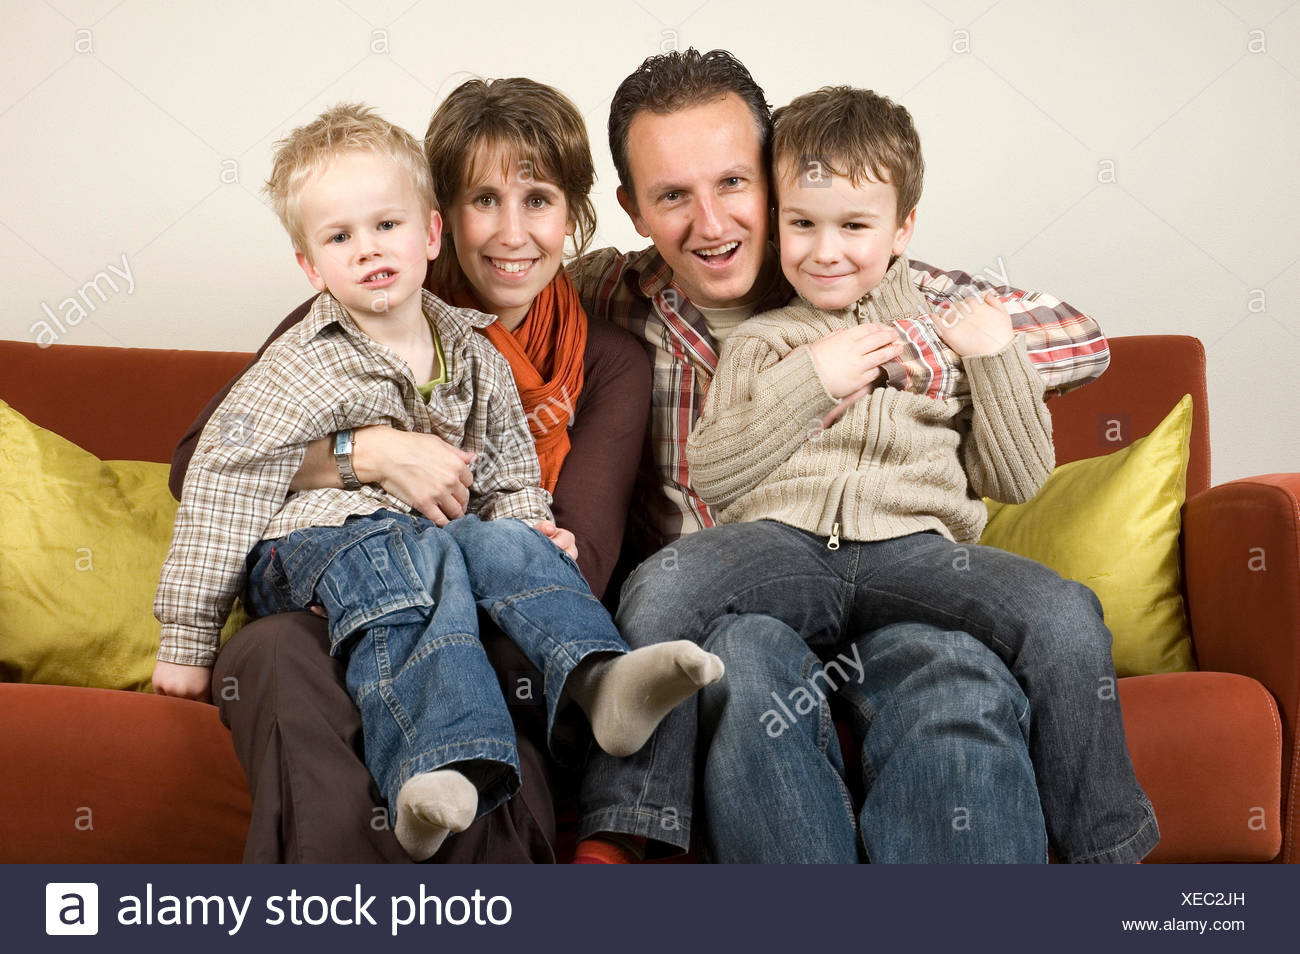 Family On A Couch 2 - Stock Image